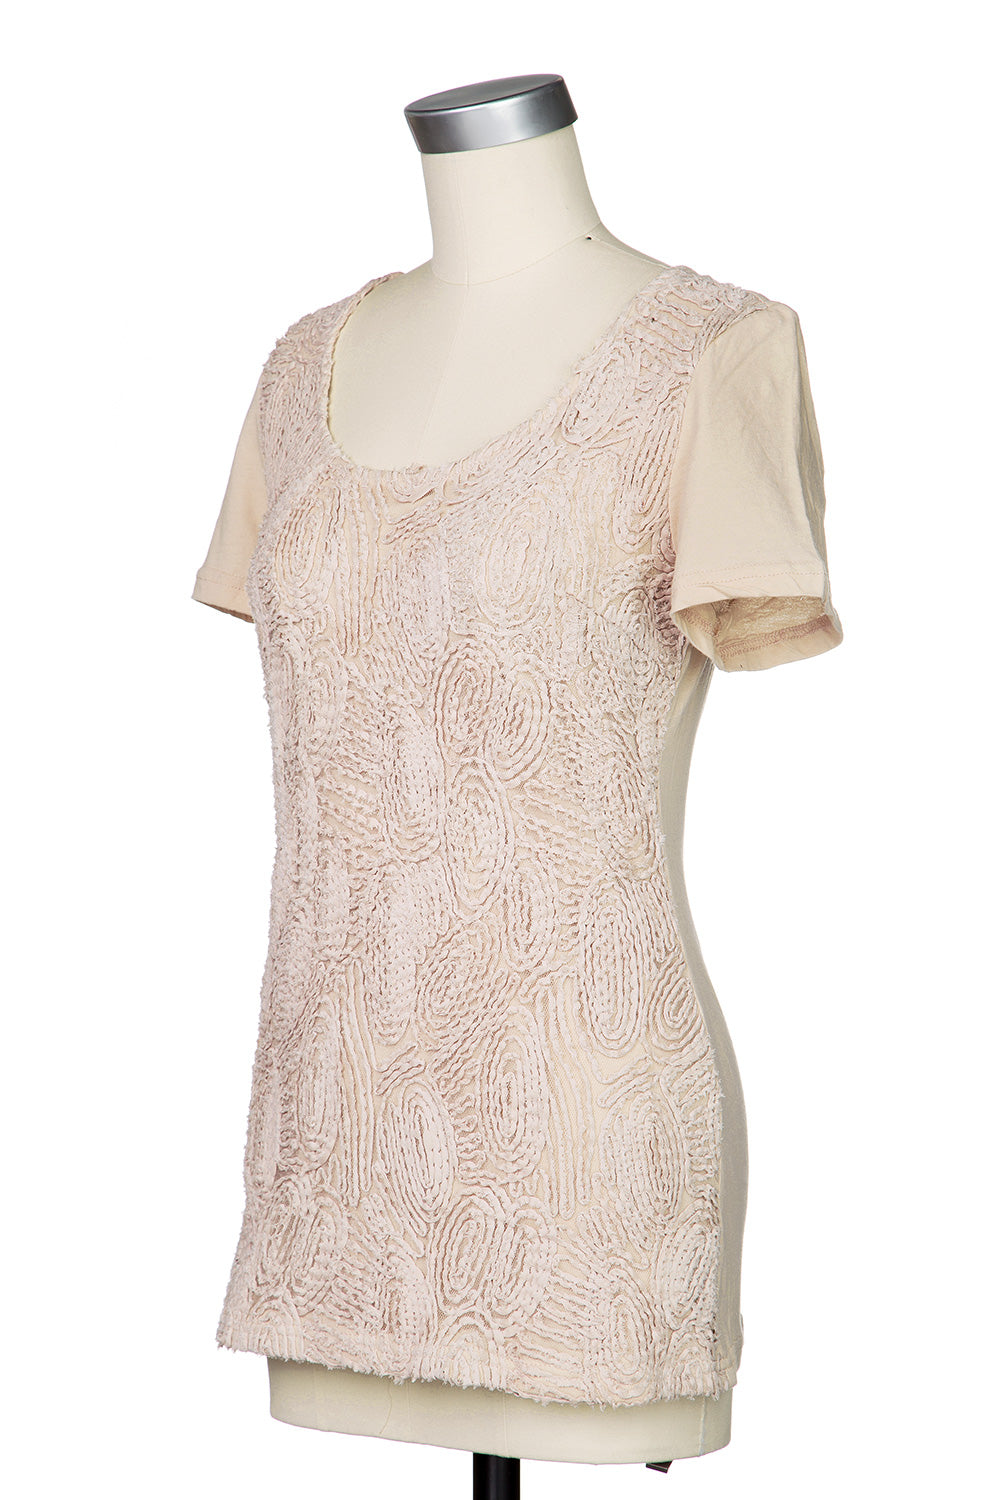 Type 2 Textured Flowers Top in Taupe